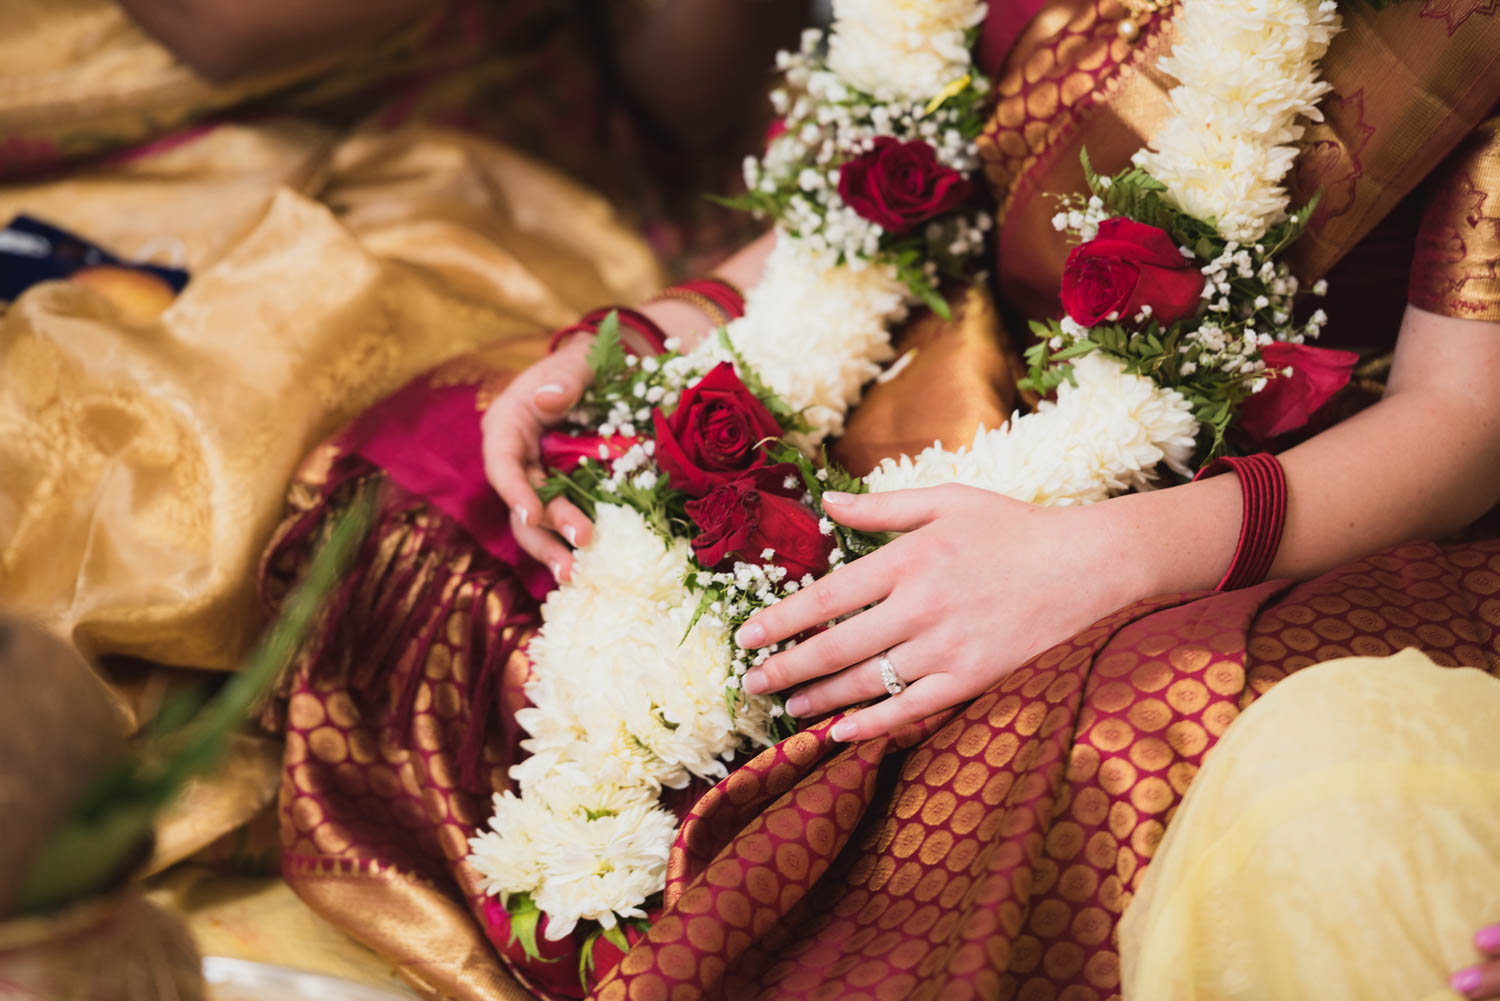 ecaterina-chandu-indian-wedding13.jpg